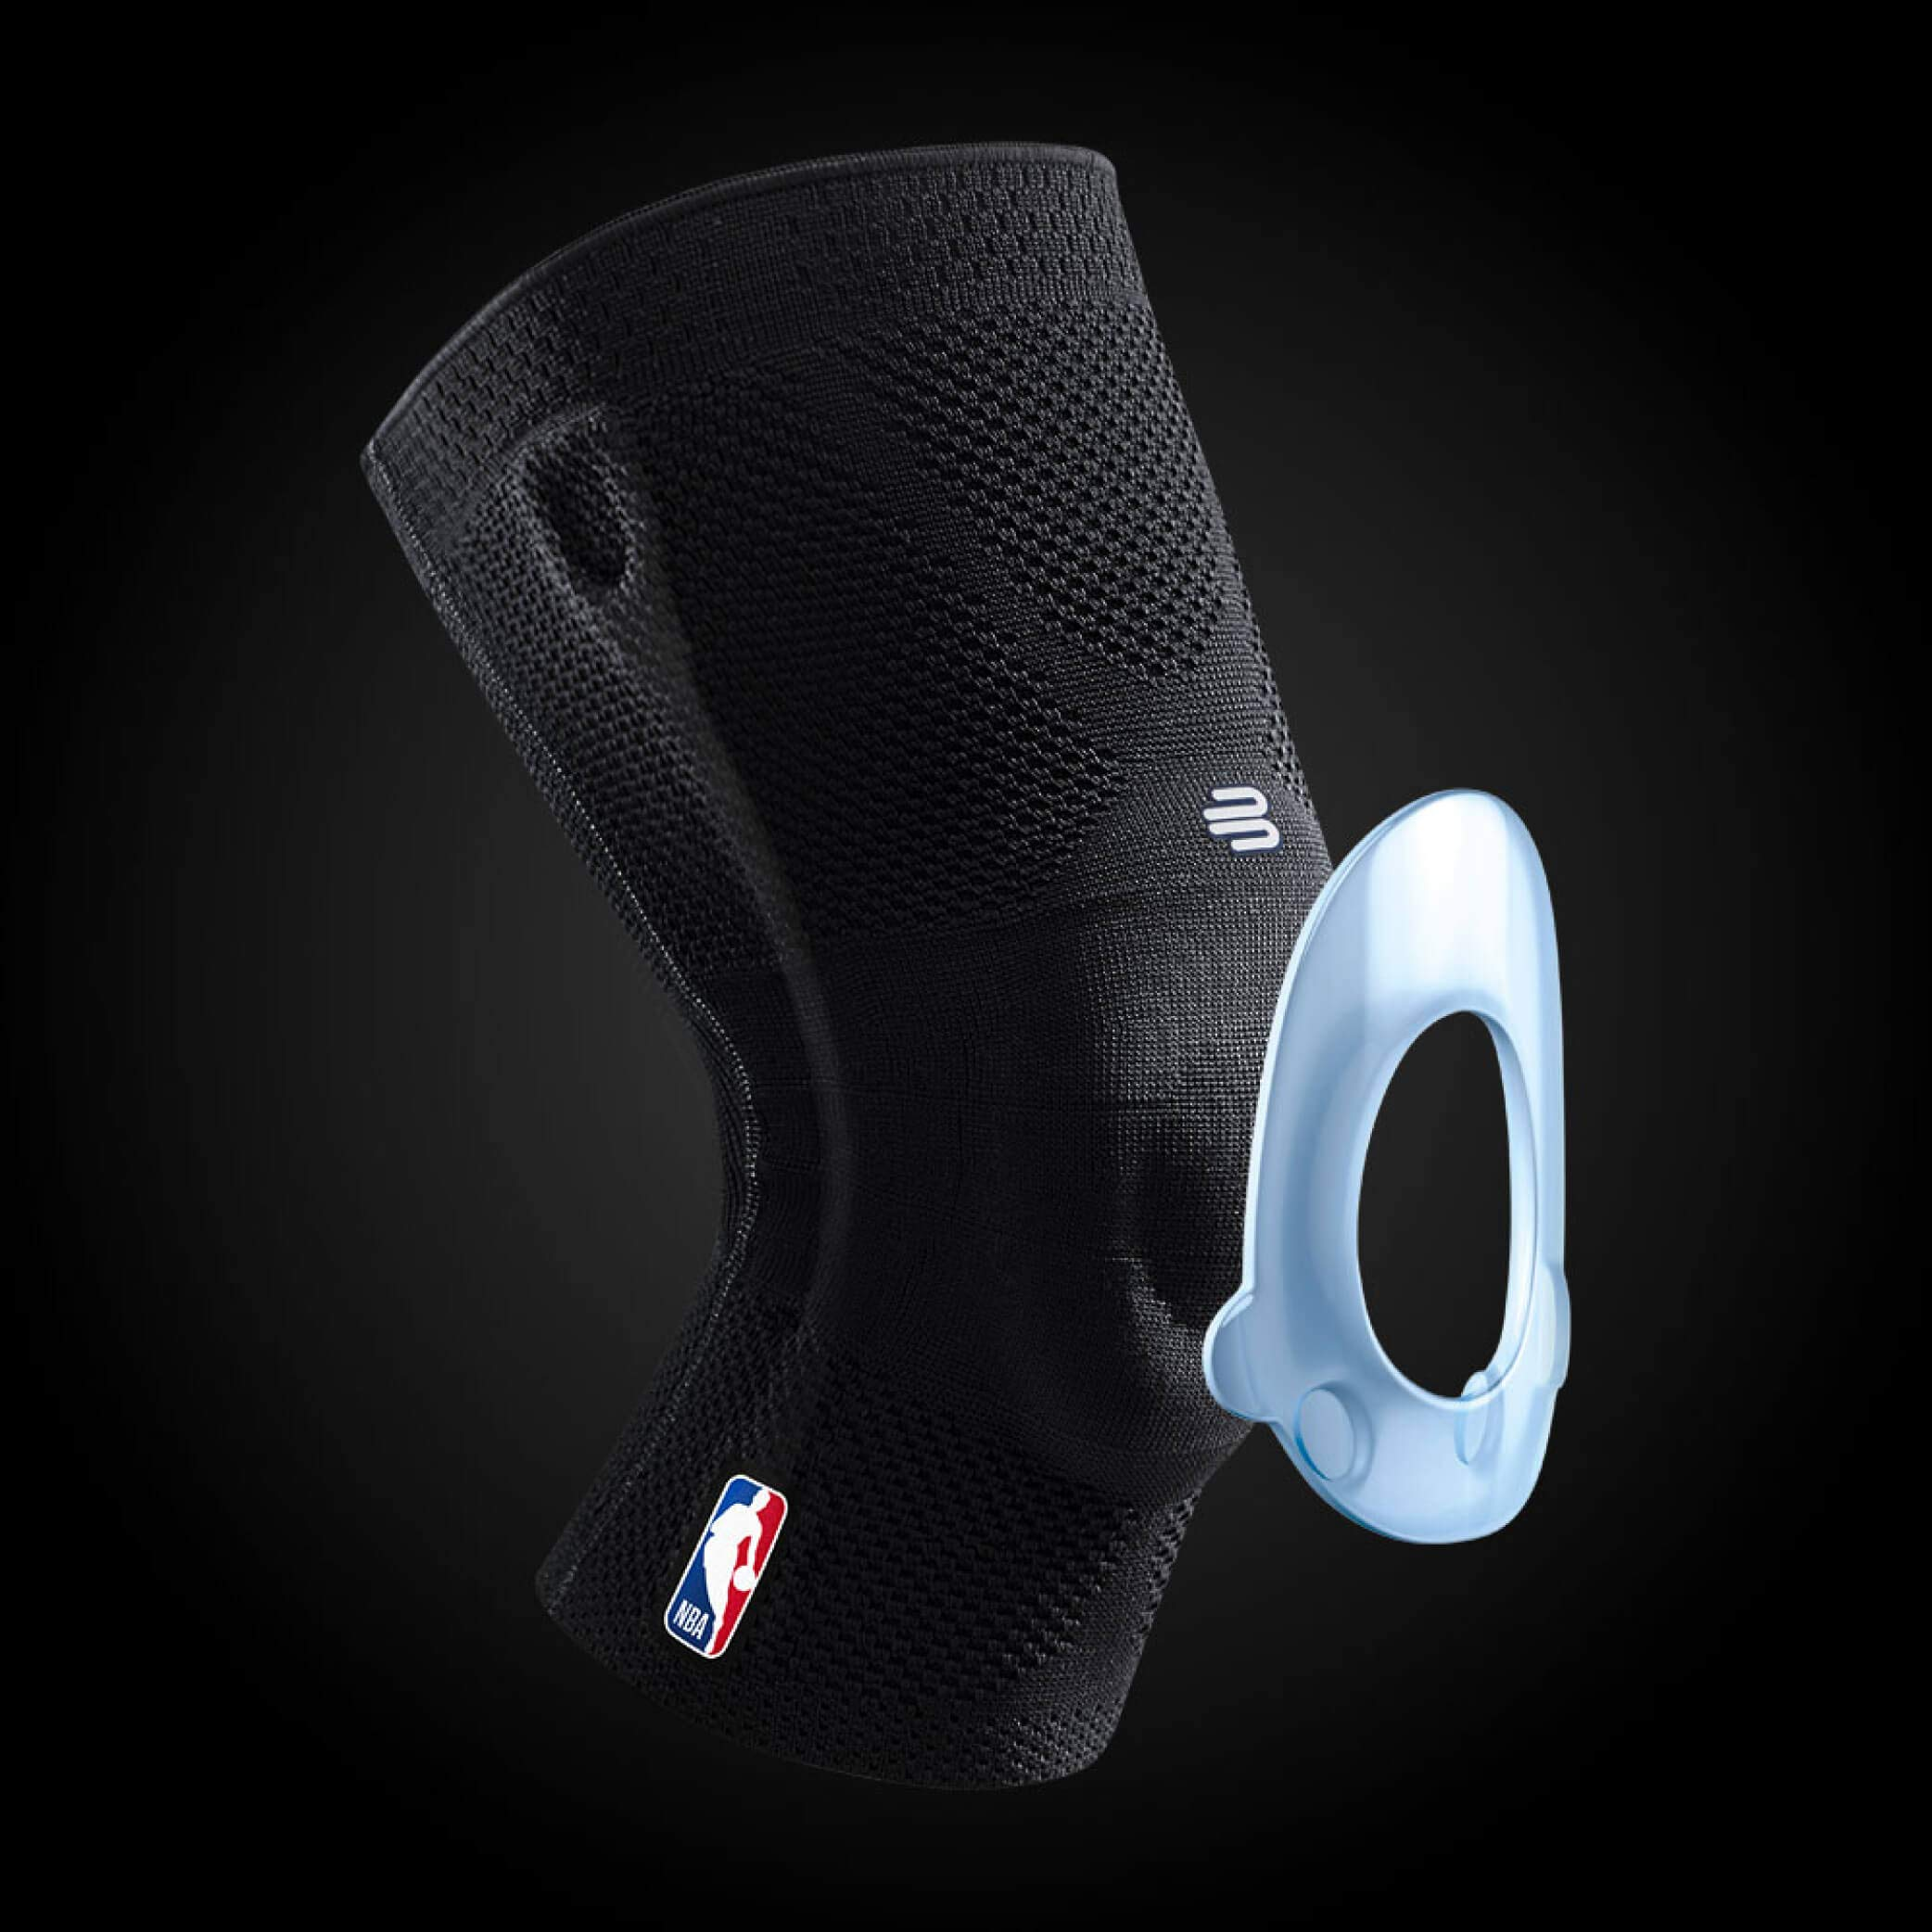 Bauerfeind GenuTrain NBA Knee Brace - Basketball Support with Medical Compression - Sleeve Design with Patella Pad Gel Ring for Pain Relief & Stabilization (Black, L) by Bauerfeind (Image #3)